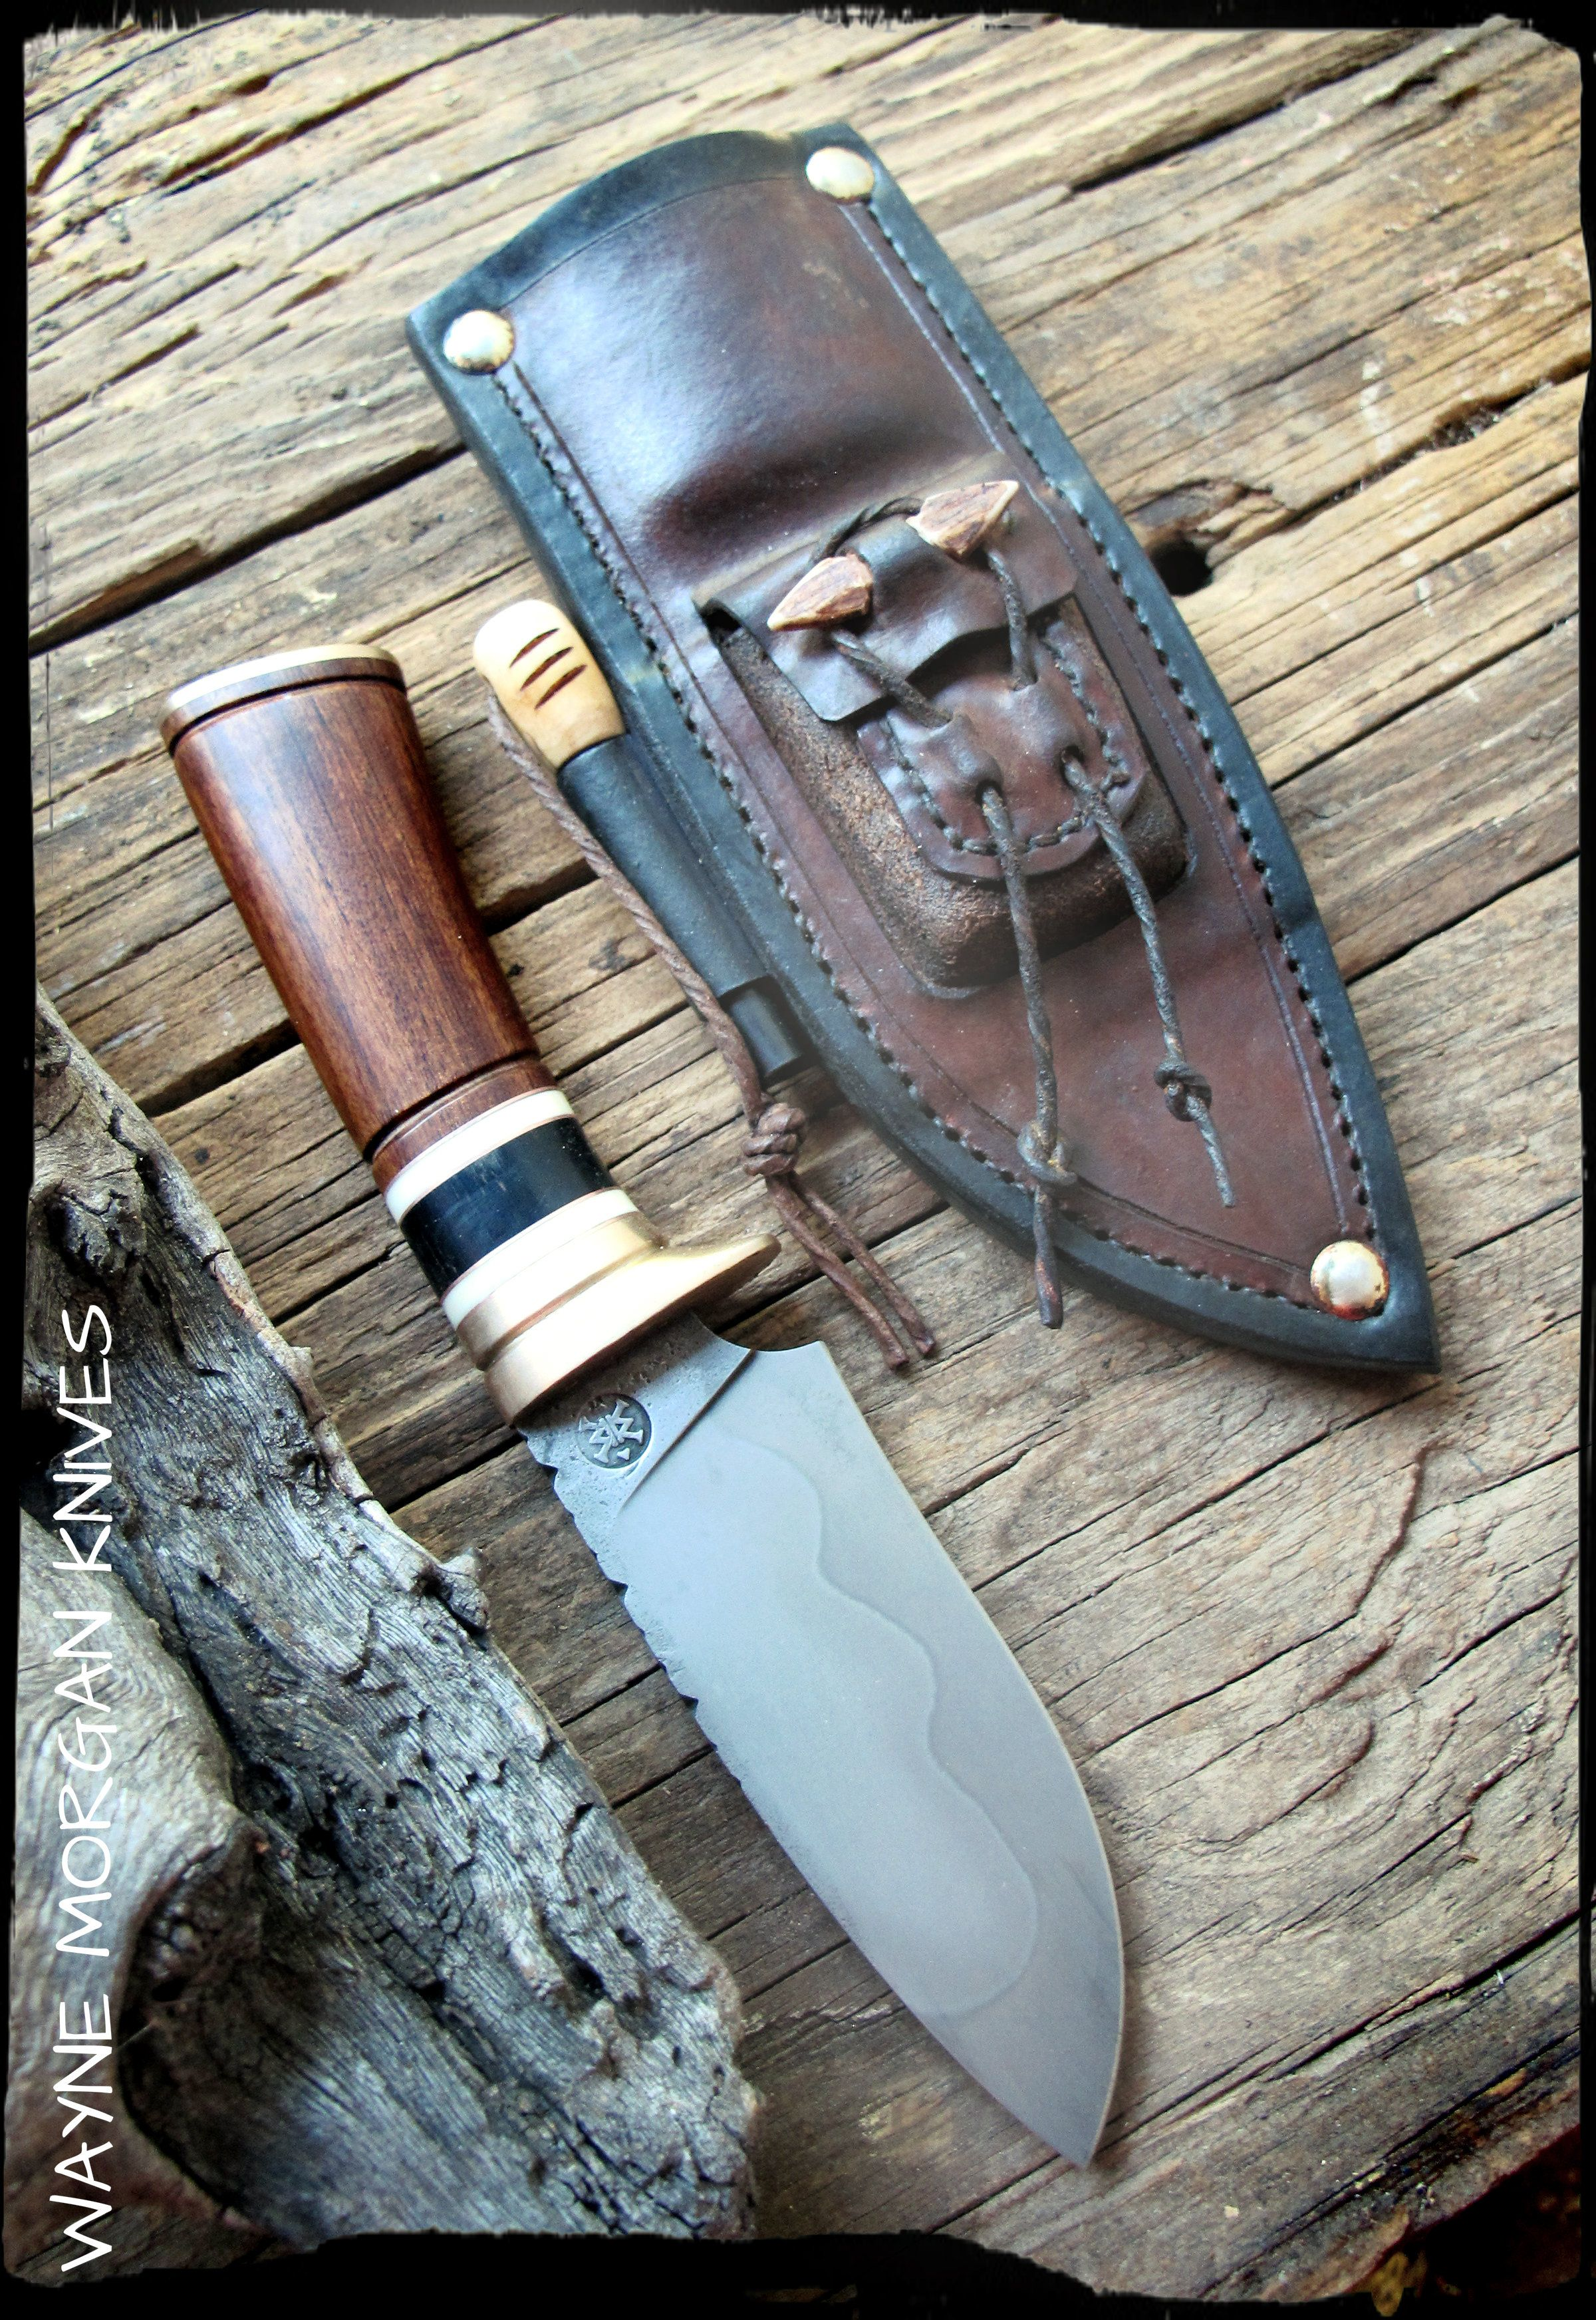 Wayne Morgan - Survival Knives.